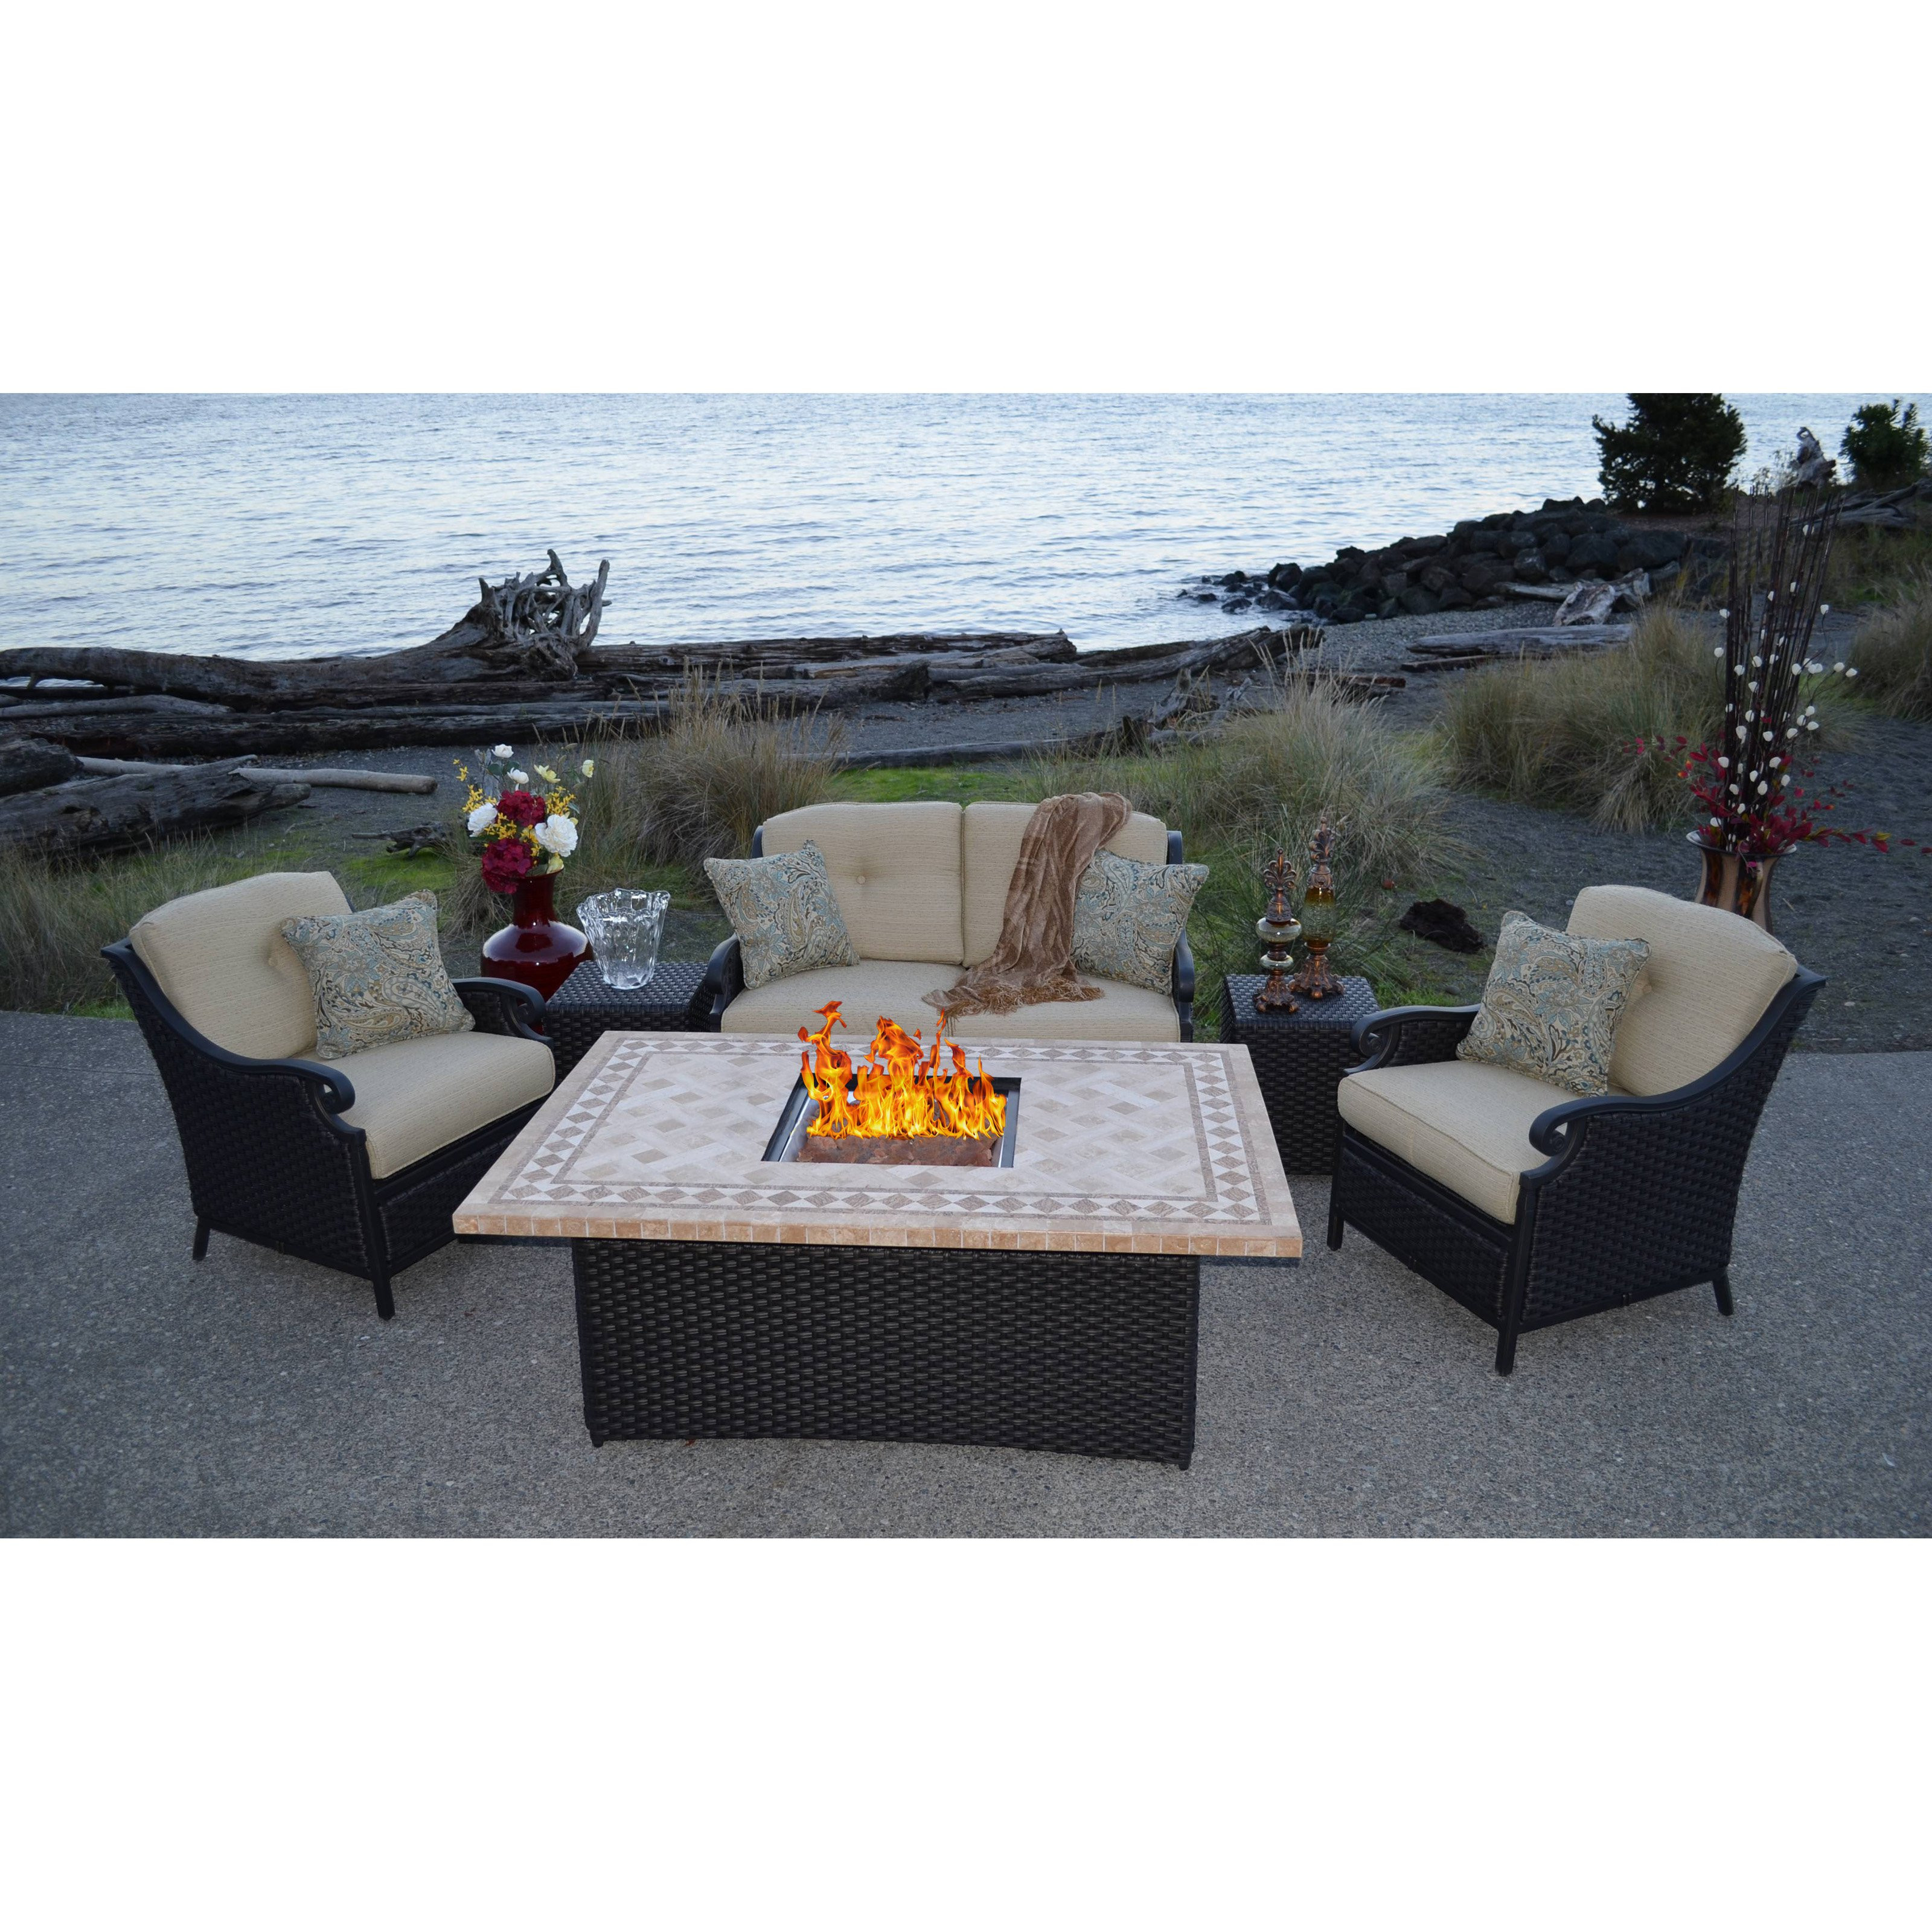 Best ideas about Outdoor Fire Pit Sets . Save or Pin Estrada All Weather Wicker Fire Pit Chat Set Fire Pit Now.